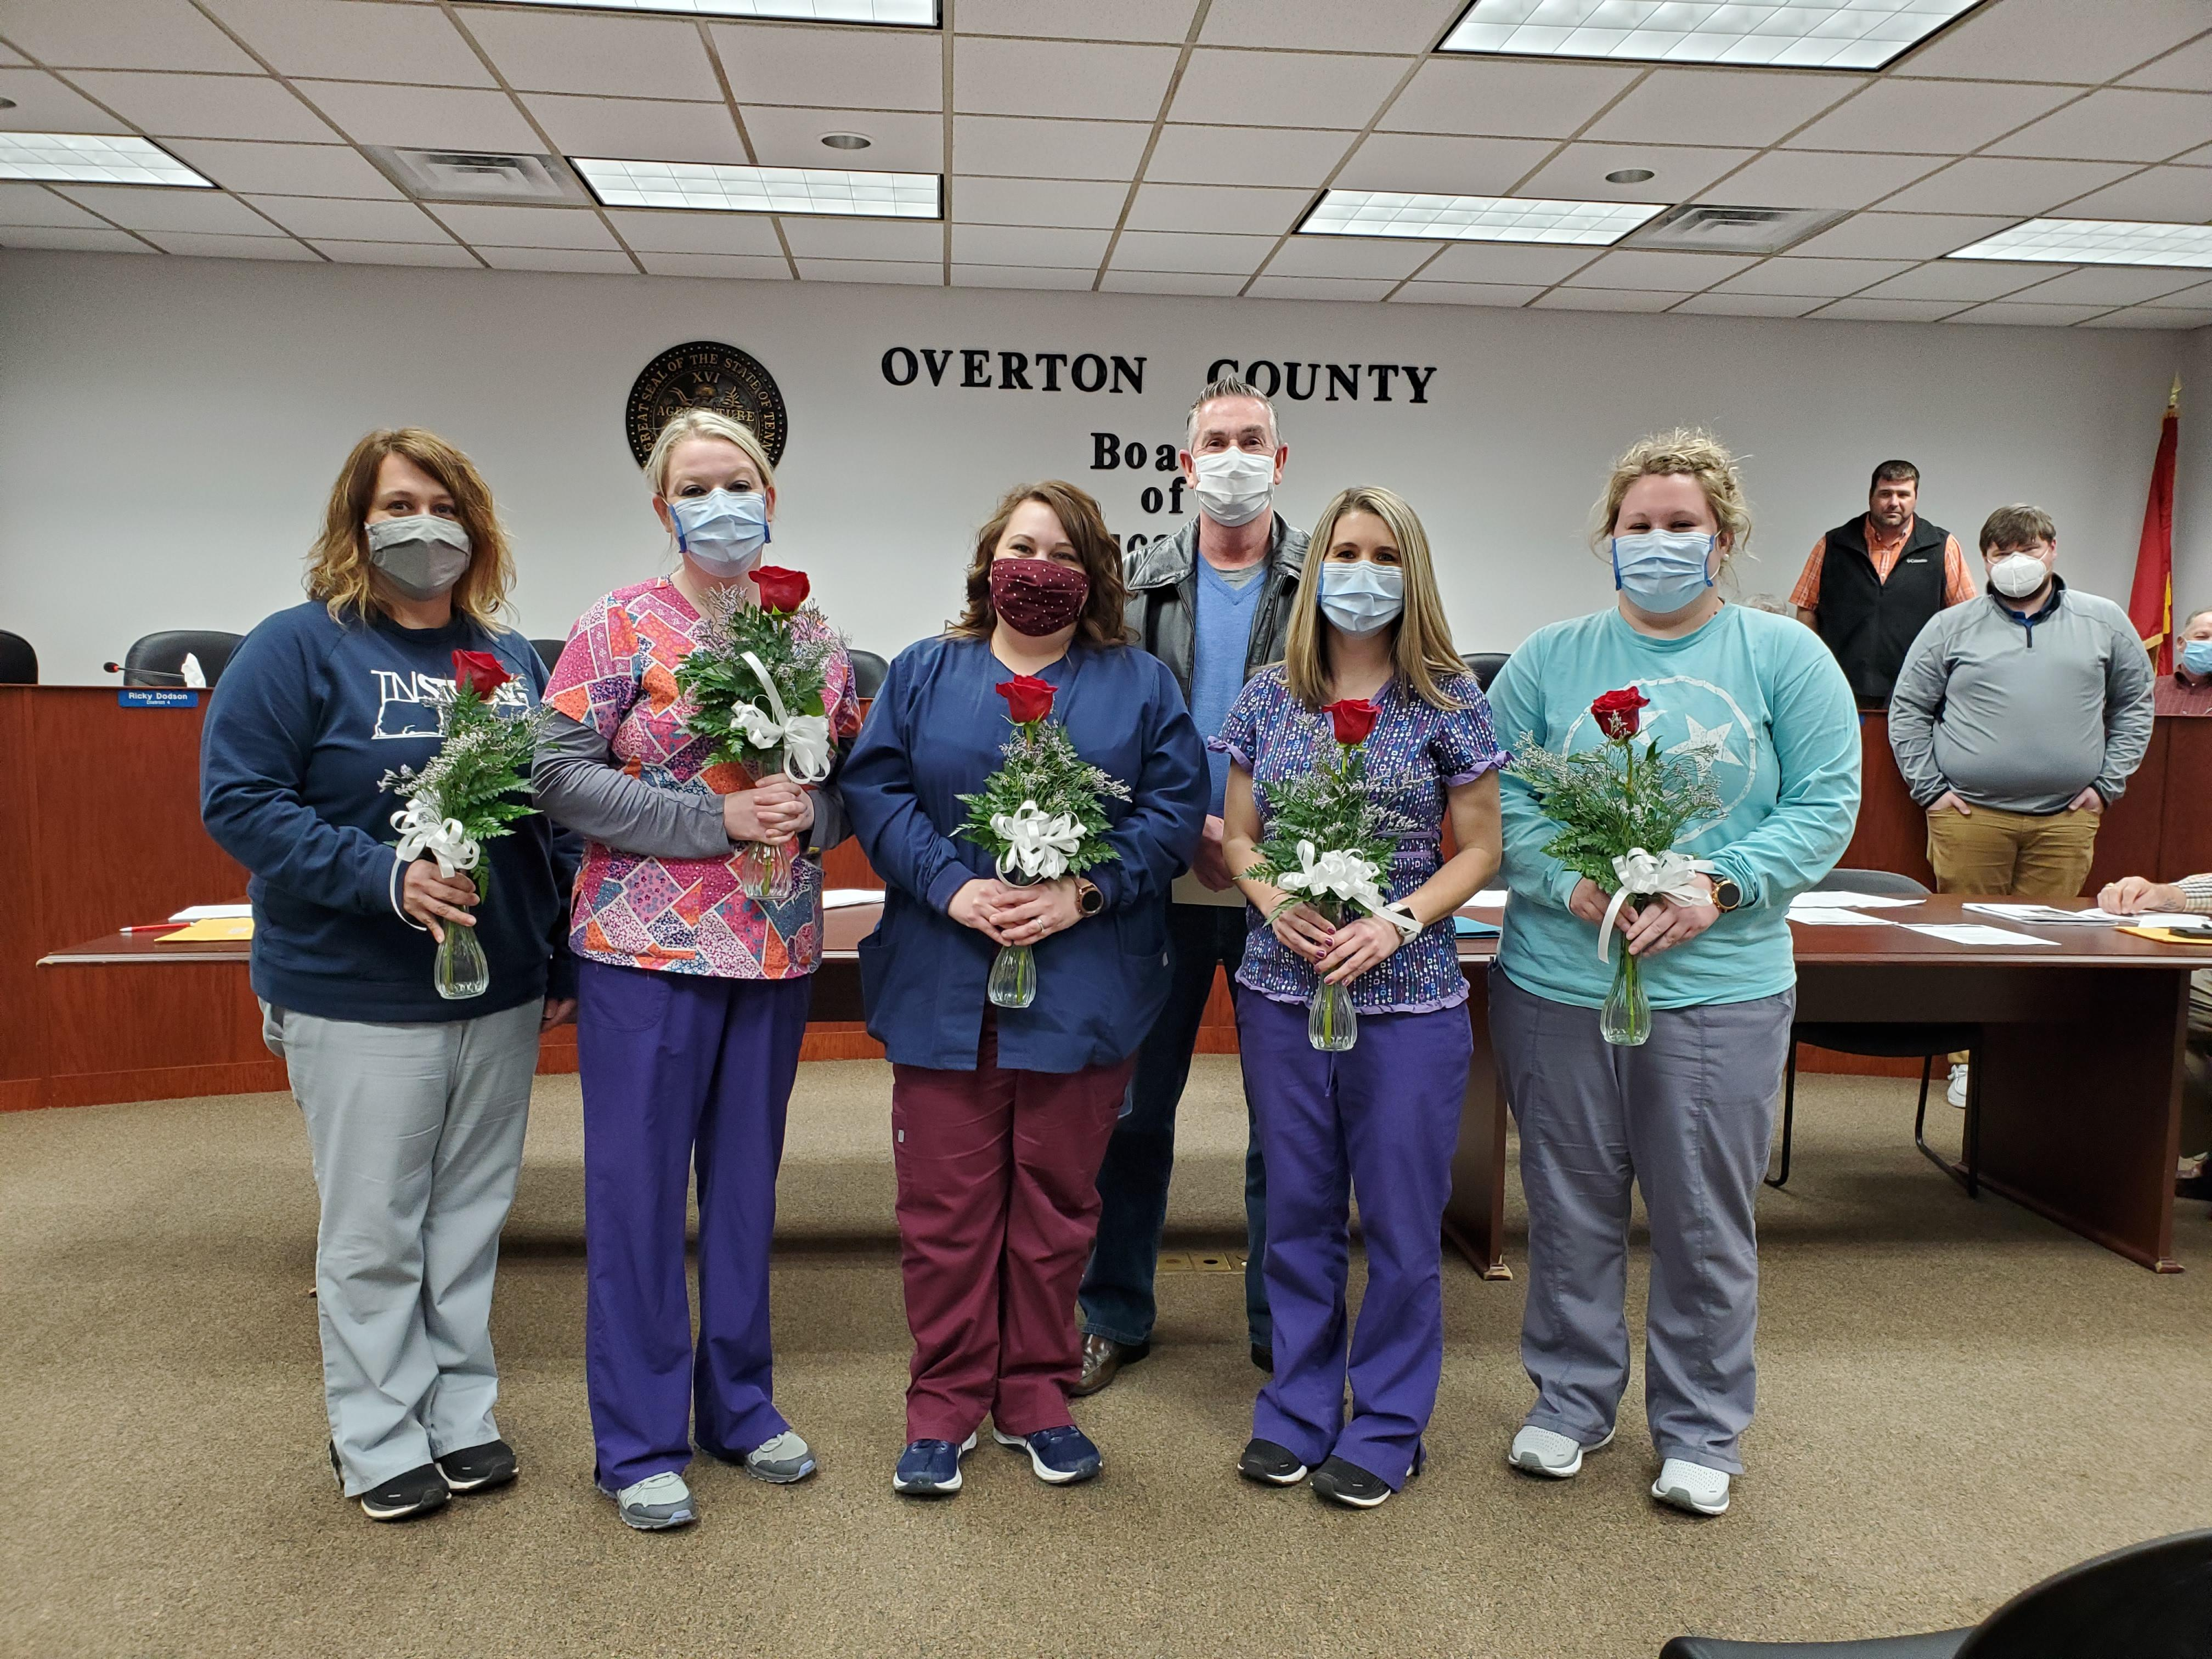 Overton County Health Department Staff:  Front row left to right:  Ginny Caudle, Ashley Walton, Rebecca Parsons, Megan Reeder, and Rebecca Vaughn.  Back Row:  Director Andy Langford